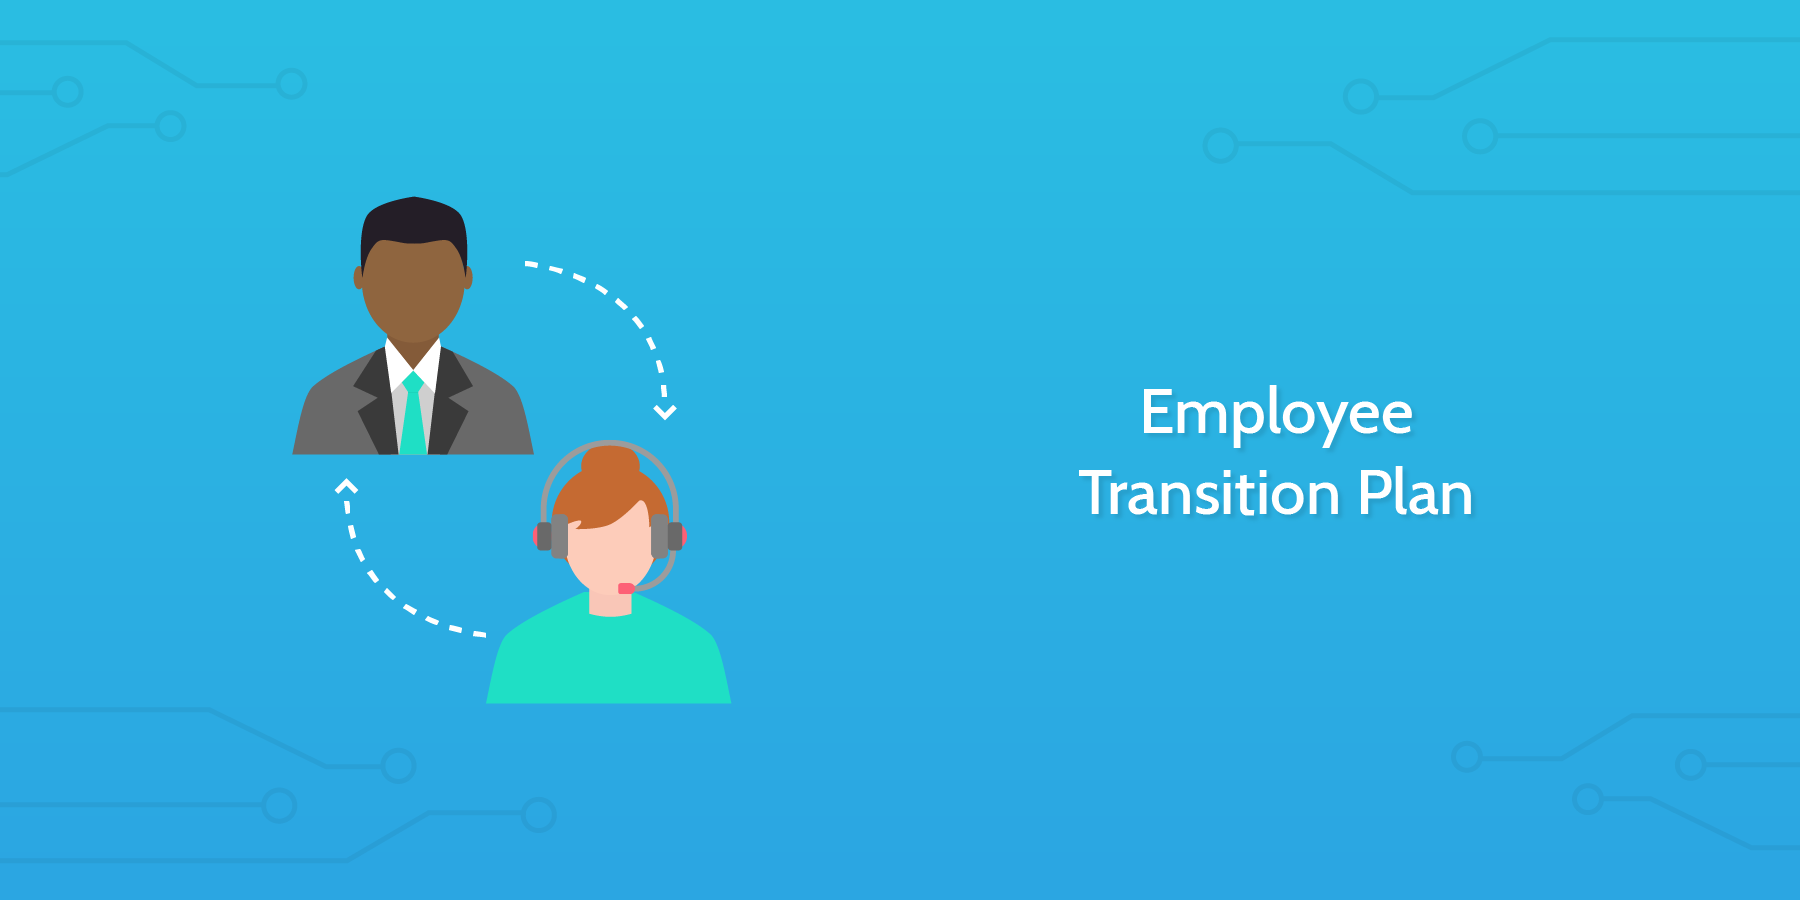 Introduction to the Employee Transition Plan: